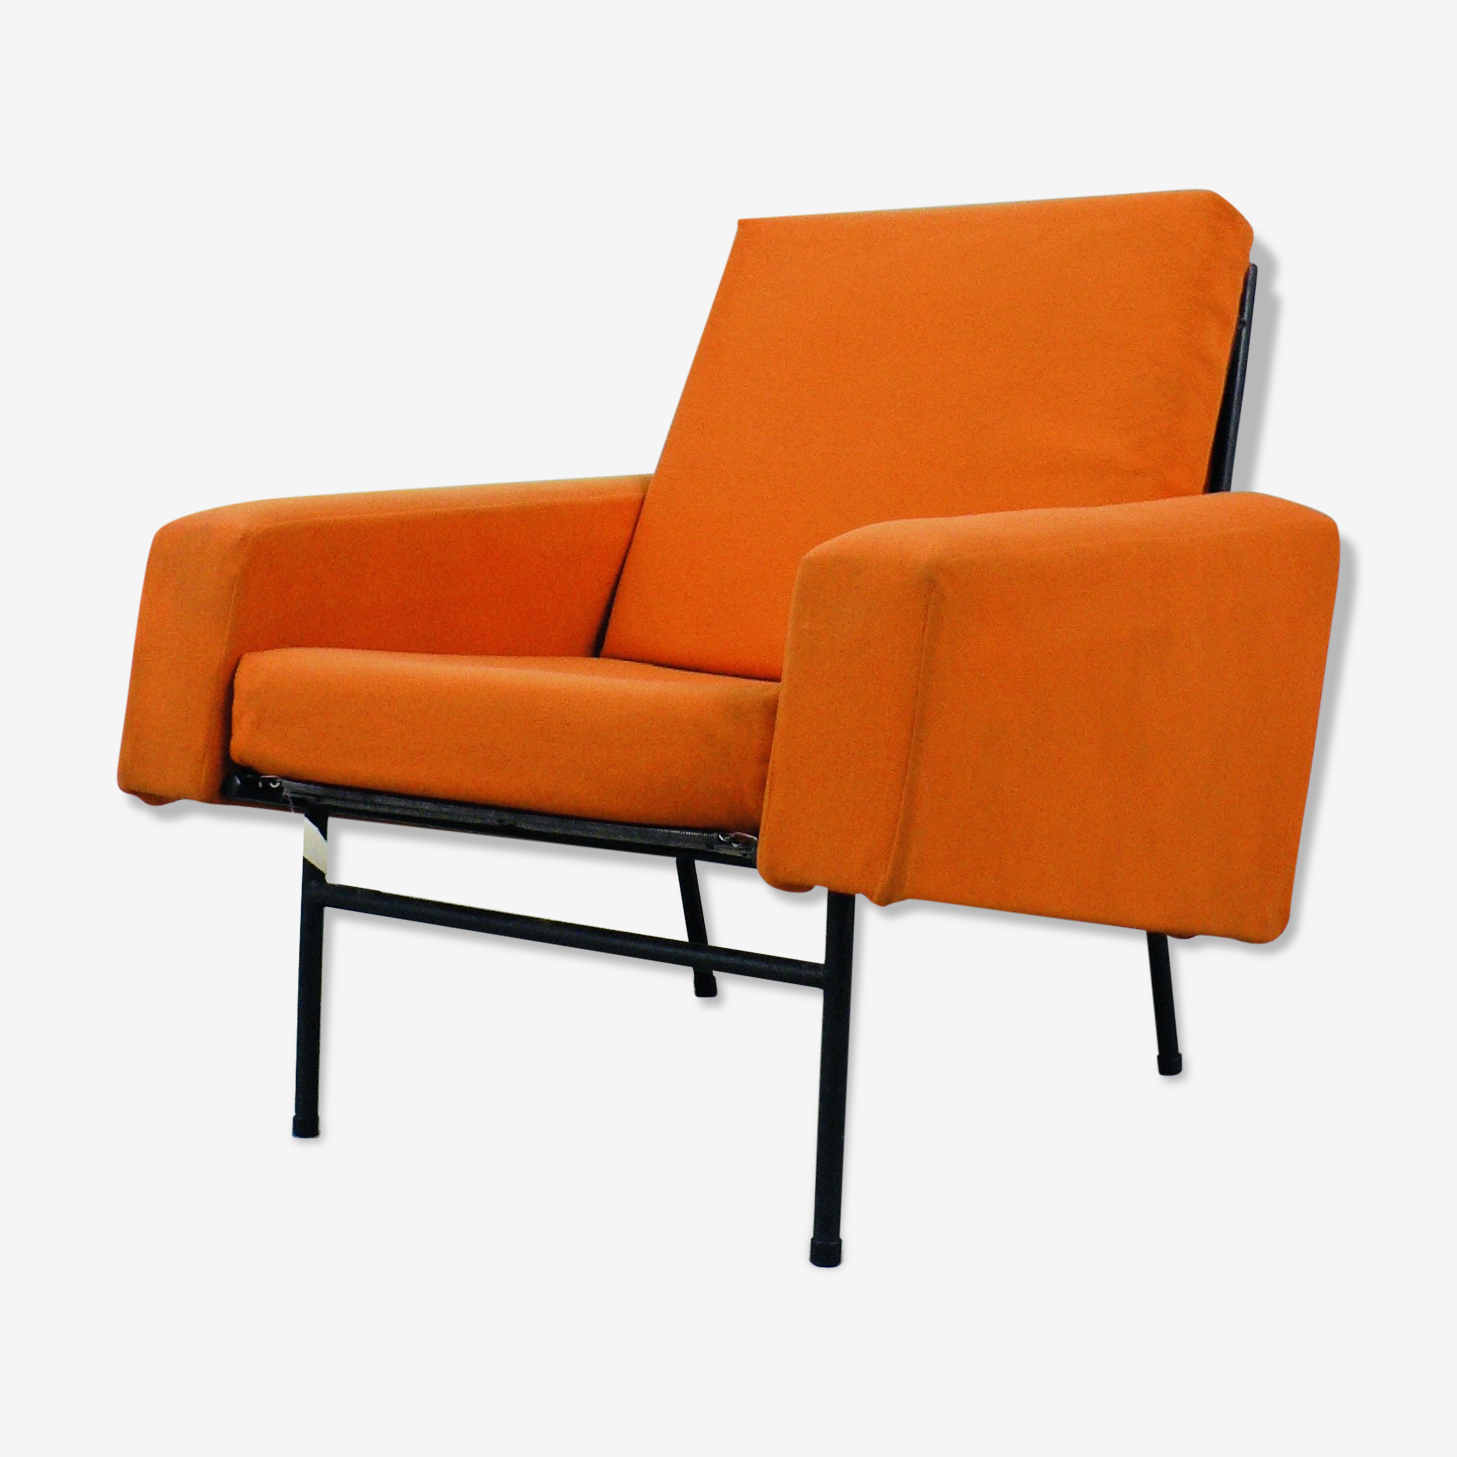 A G10 of Pierre Guariche for Airborne Chair